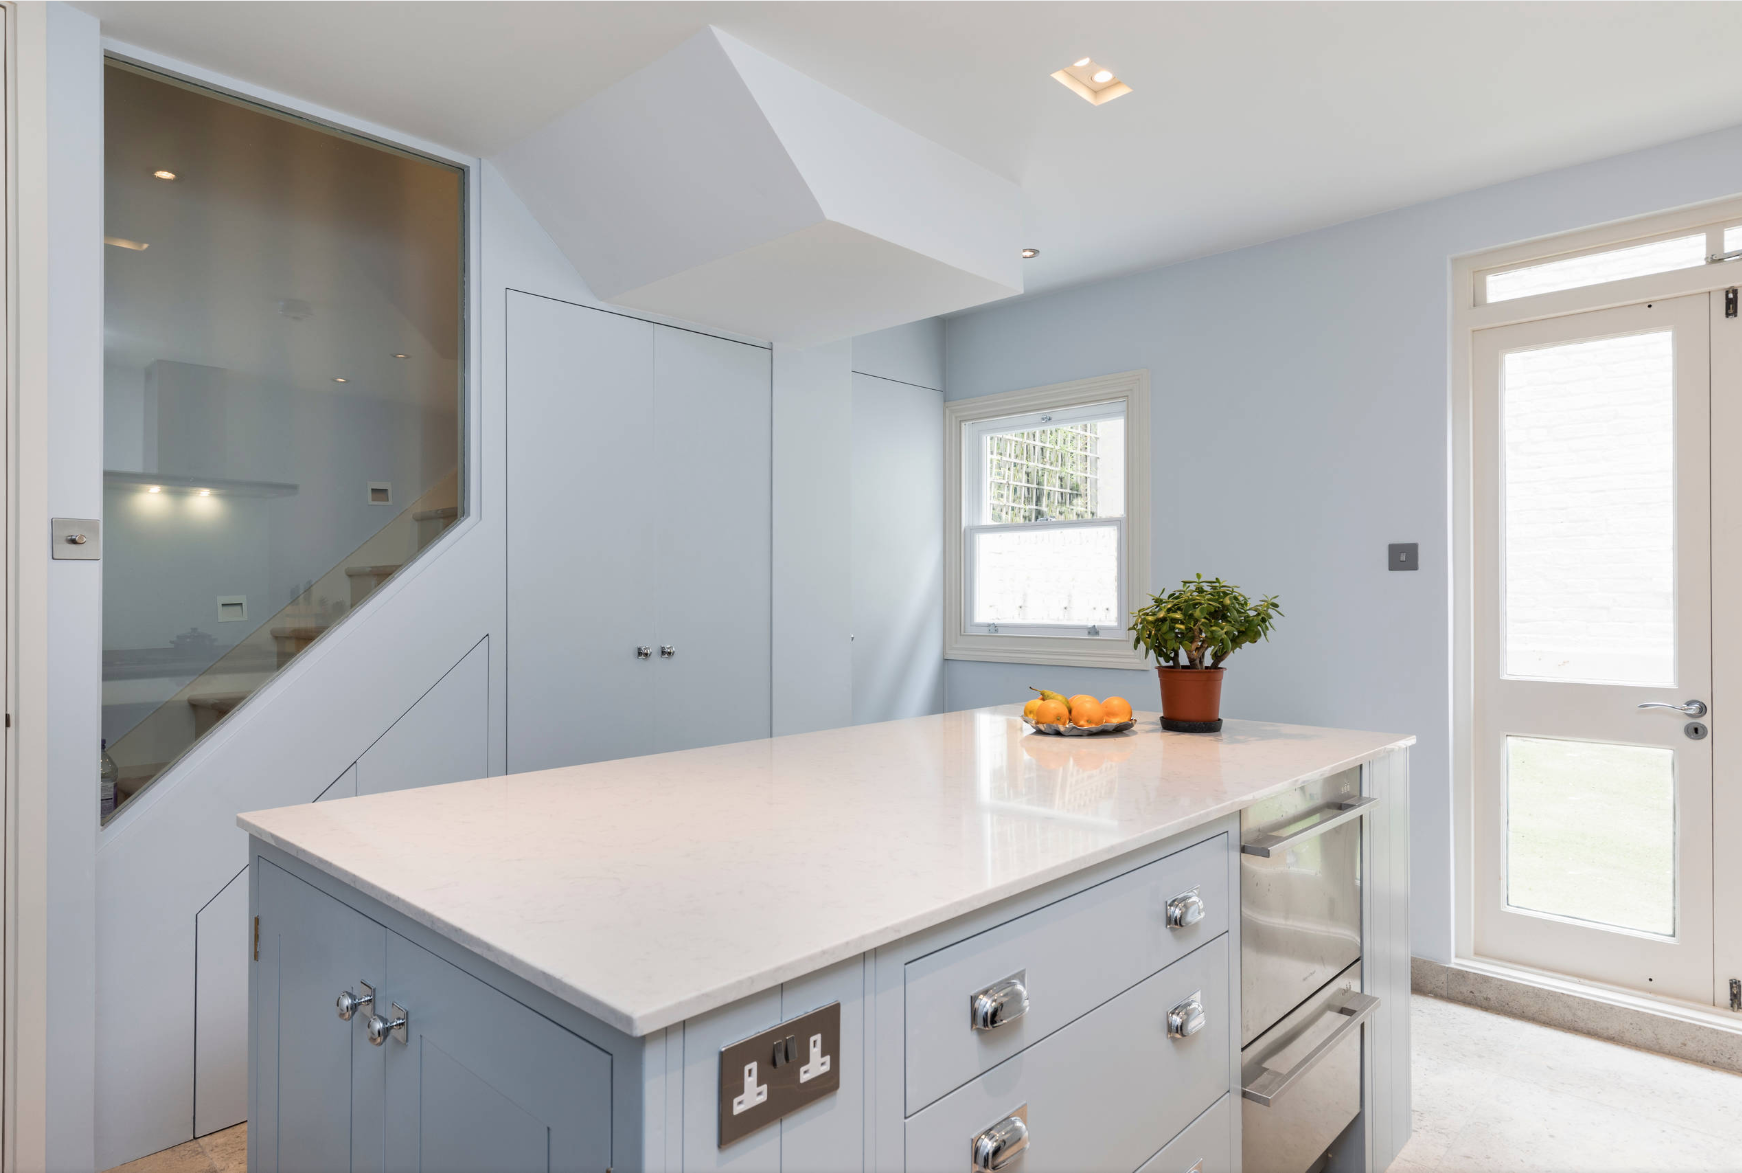 Light blue kitchen designed and build by Holland Street Kitchens, displaying kitchen island with beautiful quartz countertop